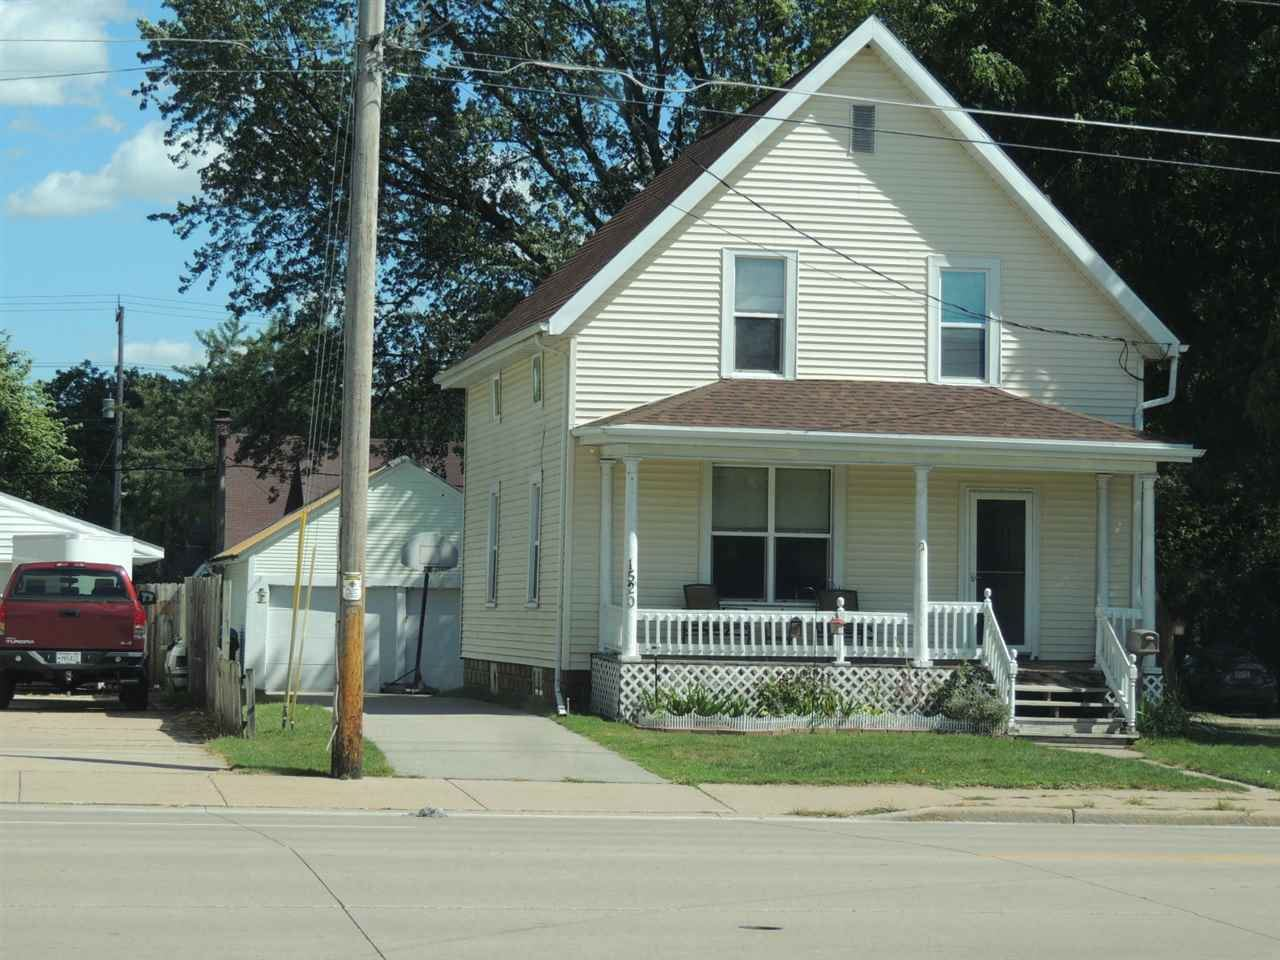 1520 N RICHMOND Street, Appleton, WI 54911 - MLS#: 50229430